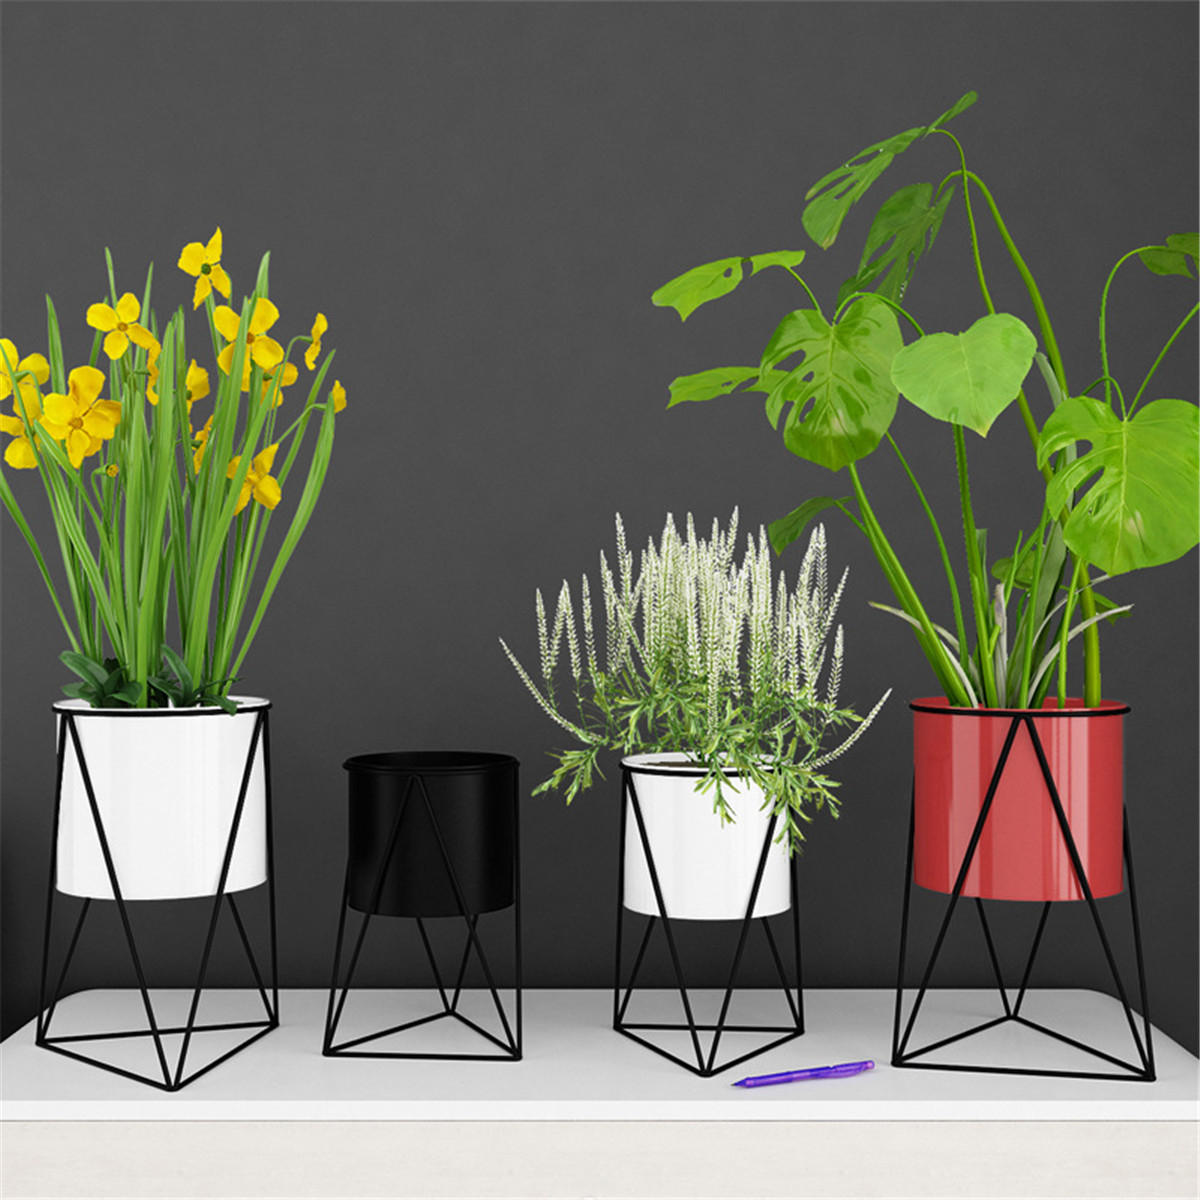 Retro Flower Stand Chic Indoor Garden Metal Plant Holder Display Planter Vase - 1